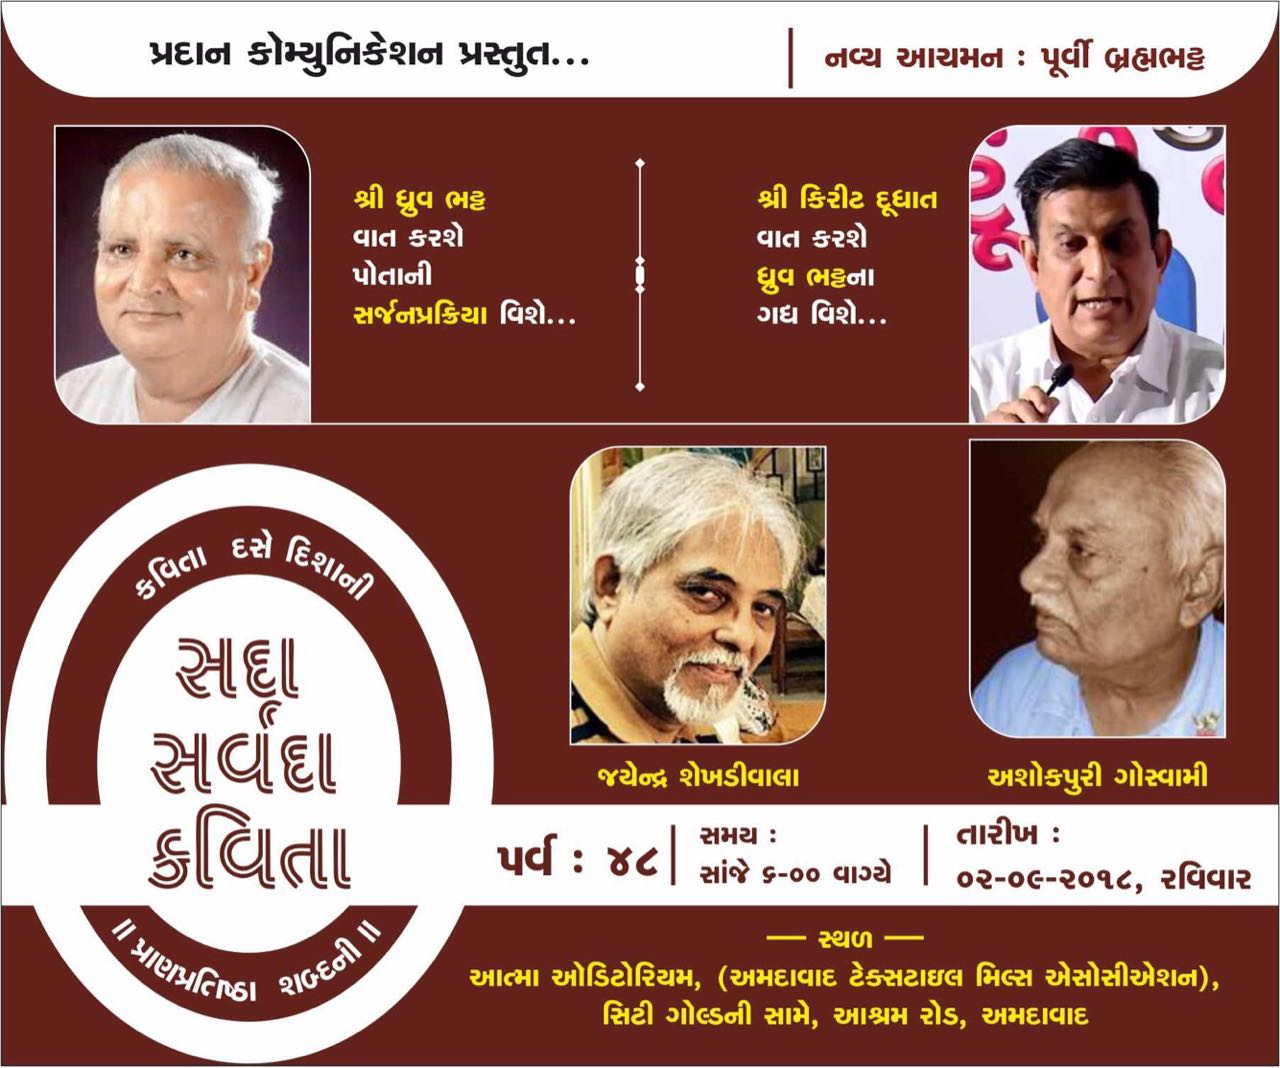 https://creativeyatra.com/wp-content/uploads/2018/08/Sada-Sarvada-Kavita-Gujarati-Literature-Event-at-Atma-House-Ahmedabad.jpeg